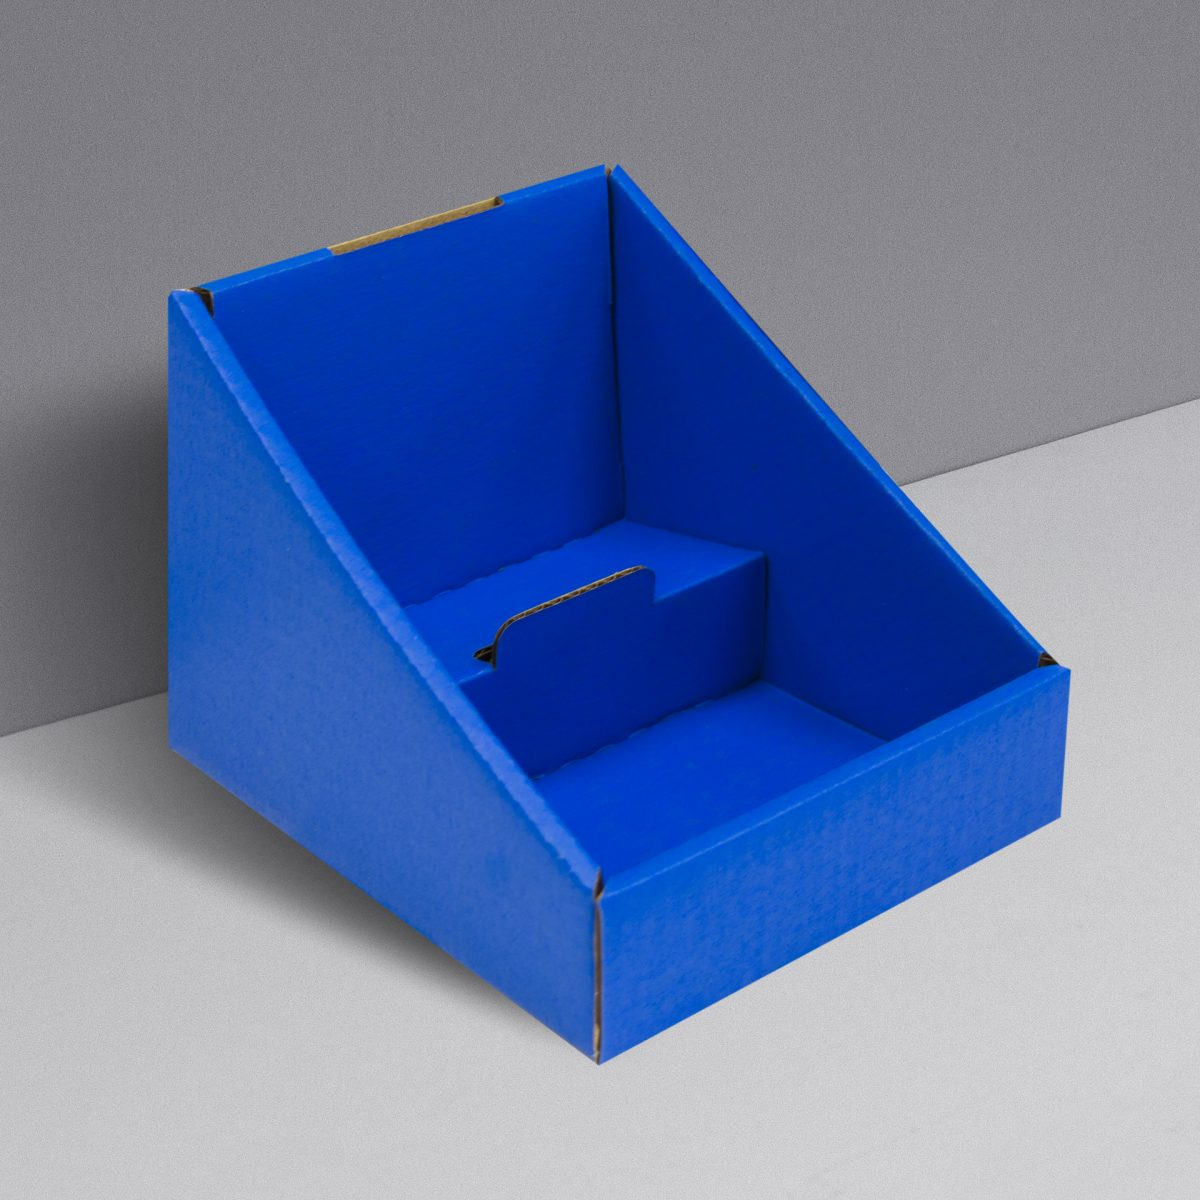 Small Cardboard counter display with 2 shelves/levels - blue